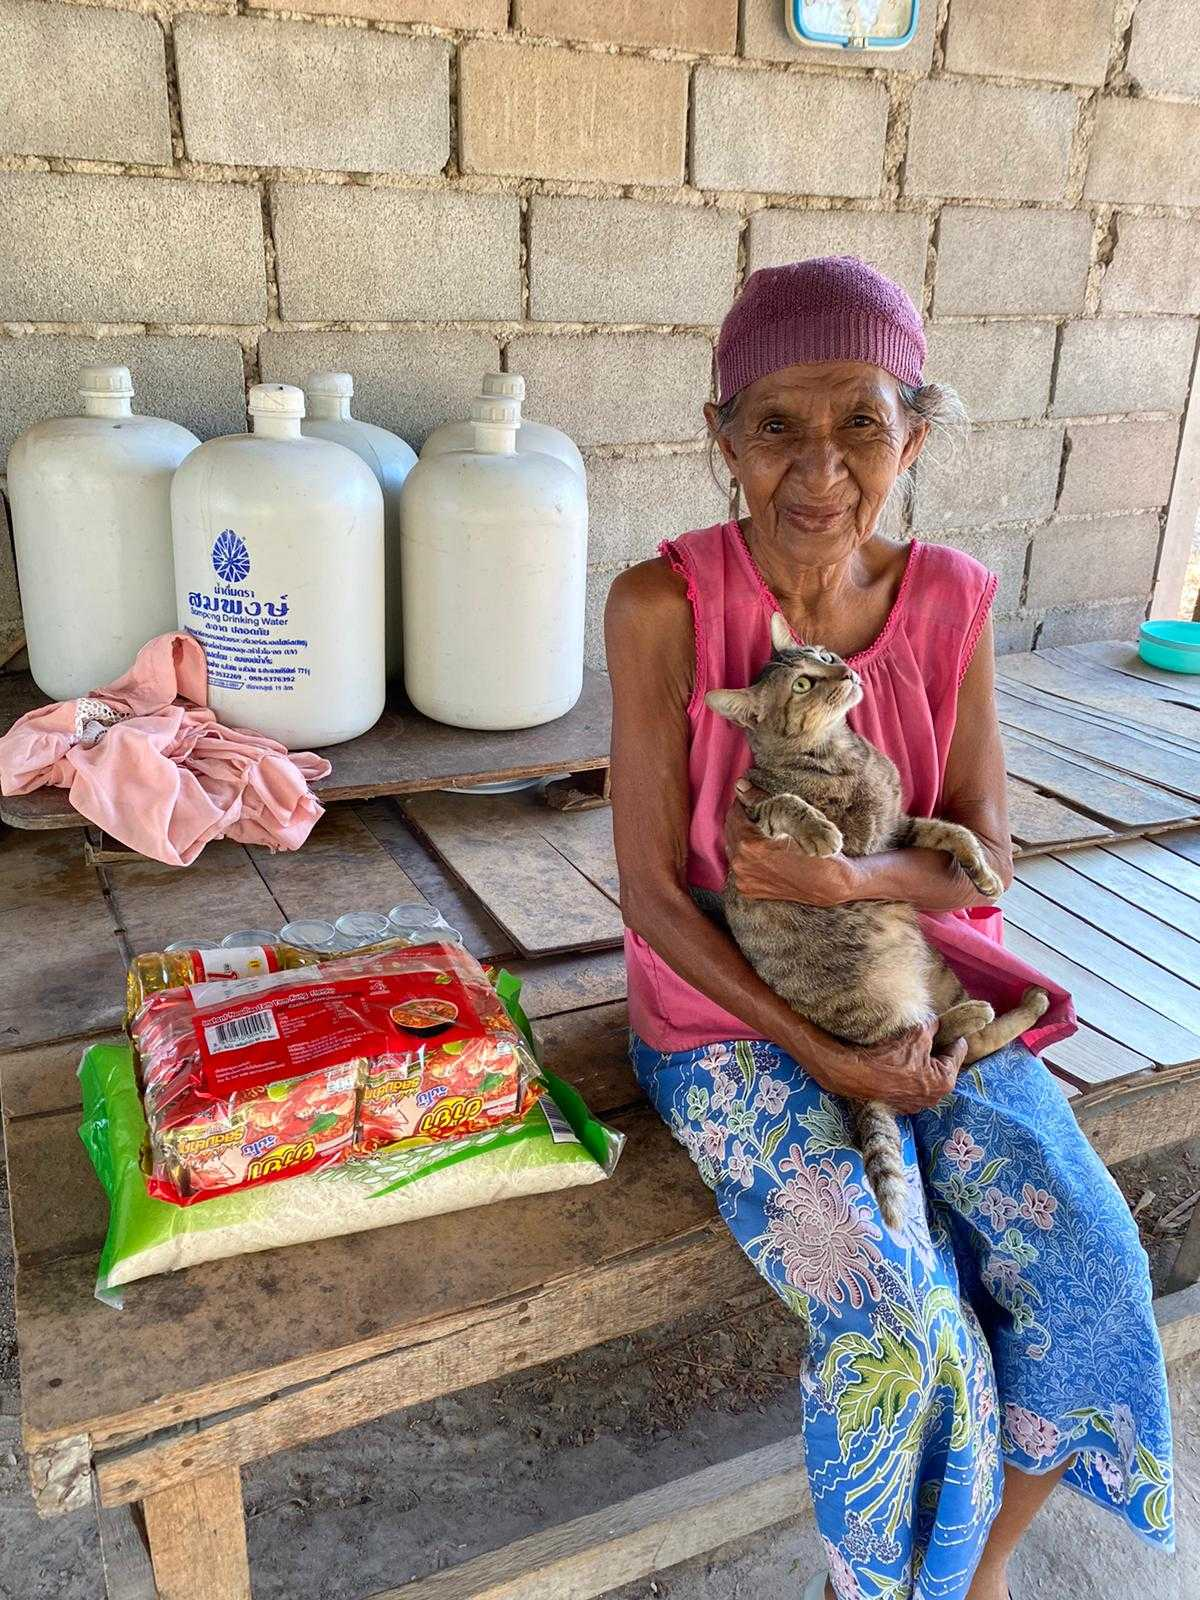 elderly woman with cat and food package